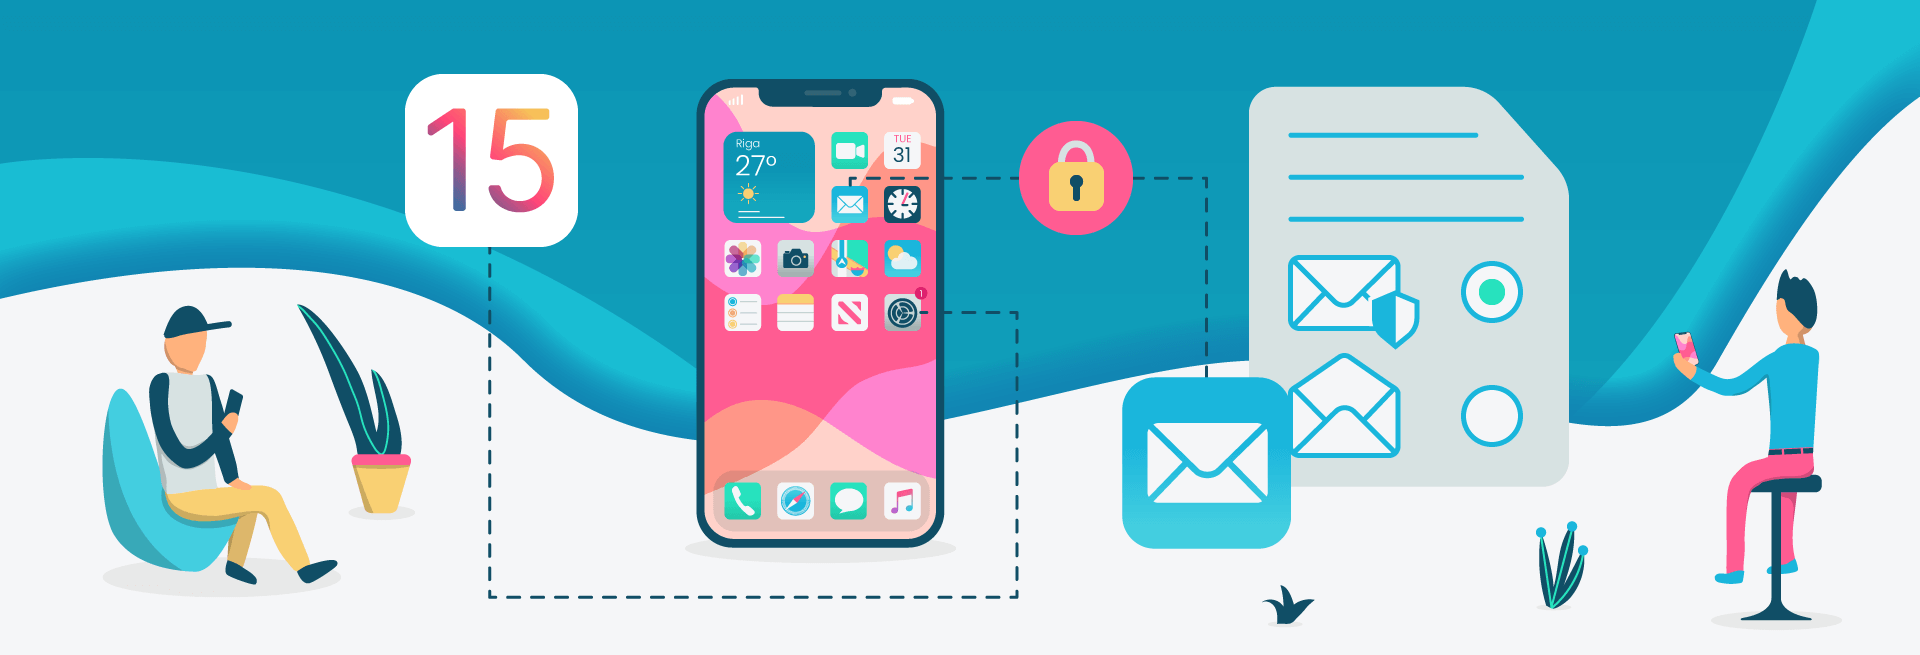 ios 15 email privacy update blog cover